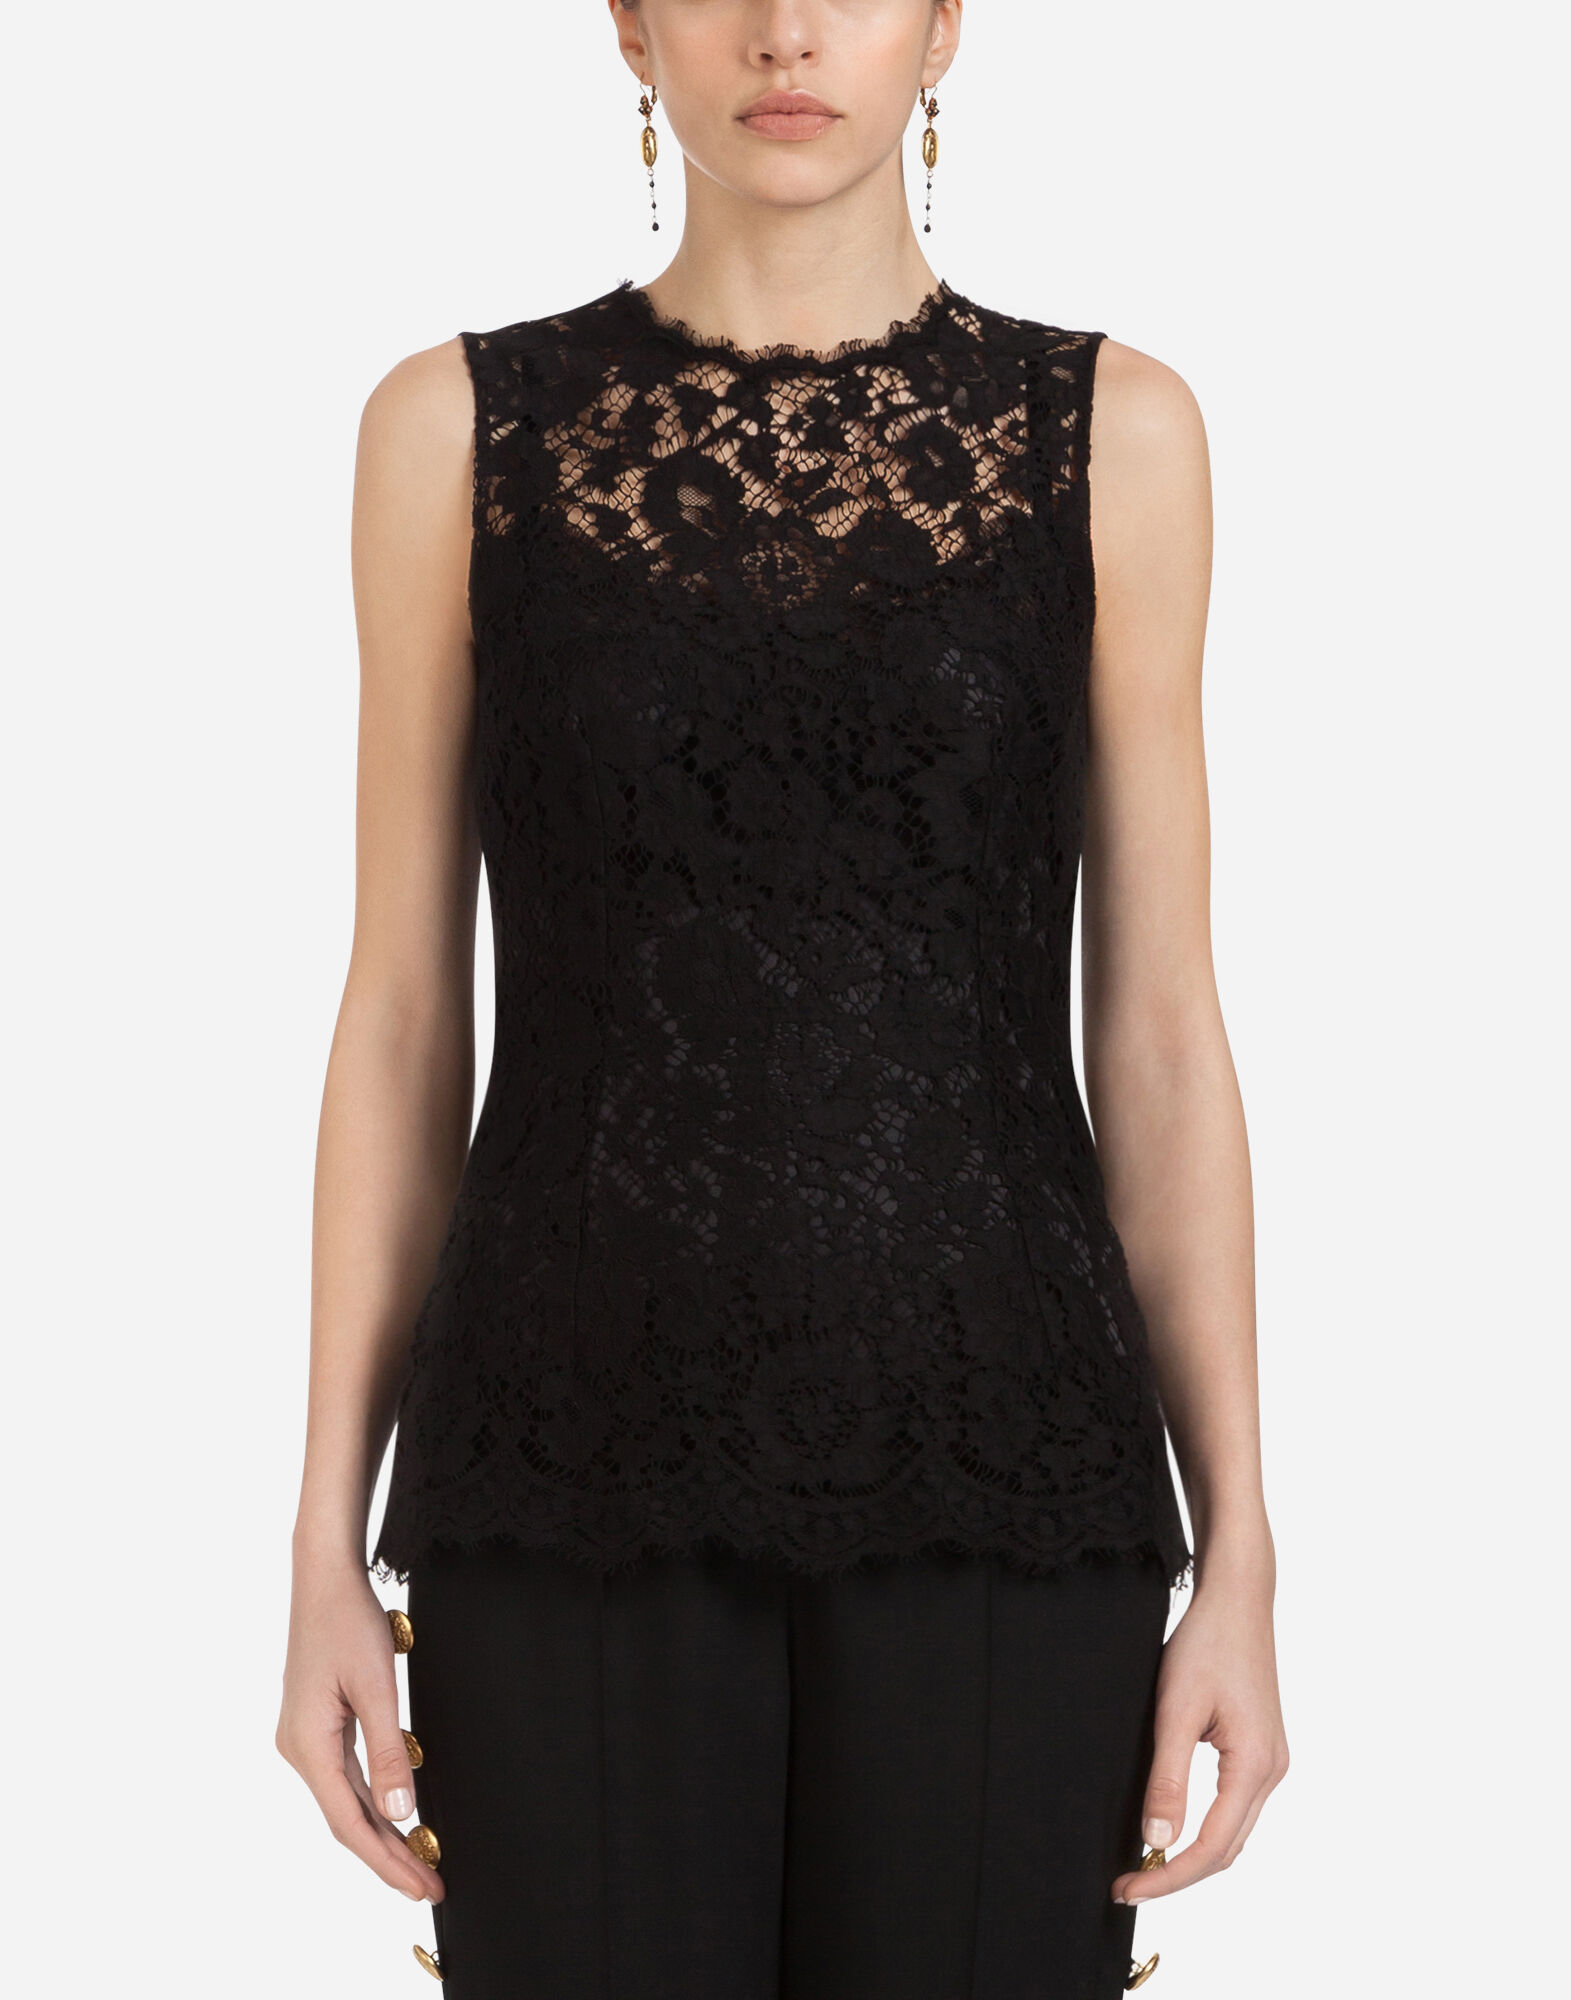 DOLCE & GABBANA Crewneck Sleeveless Lace Shell Top, Black